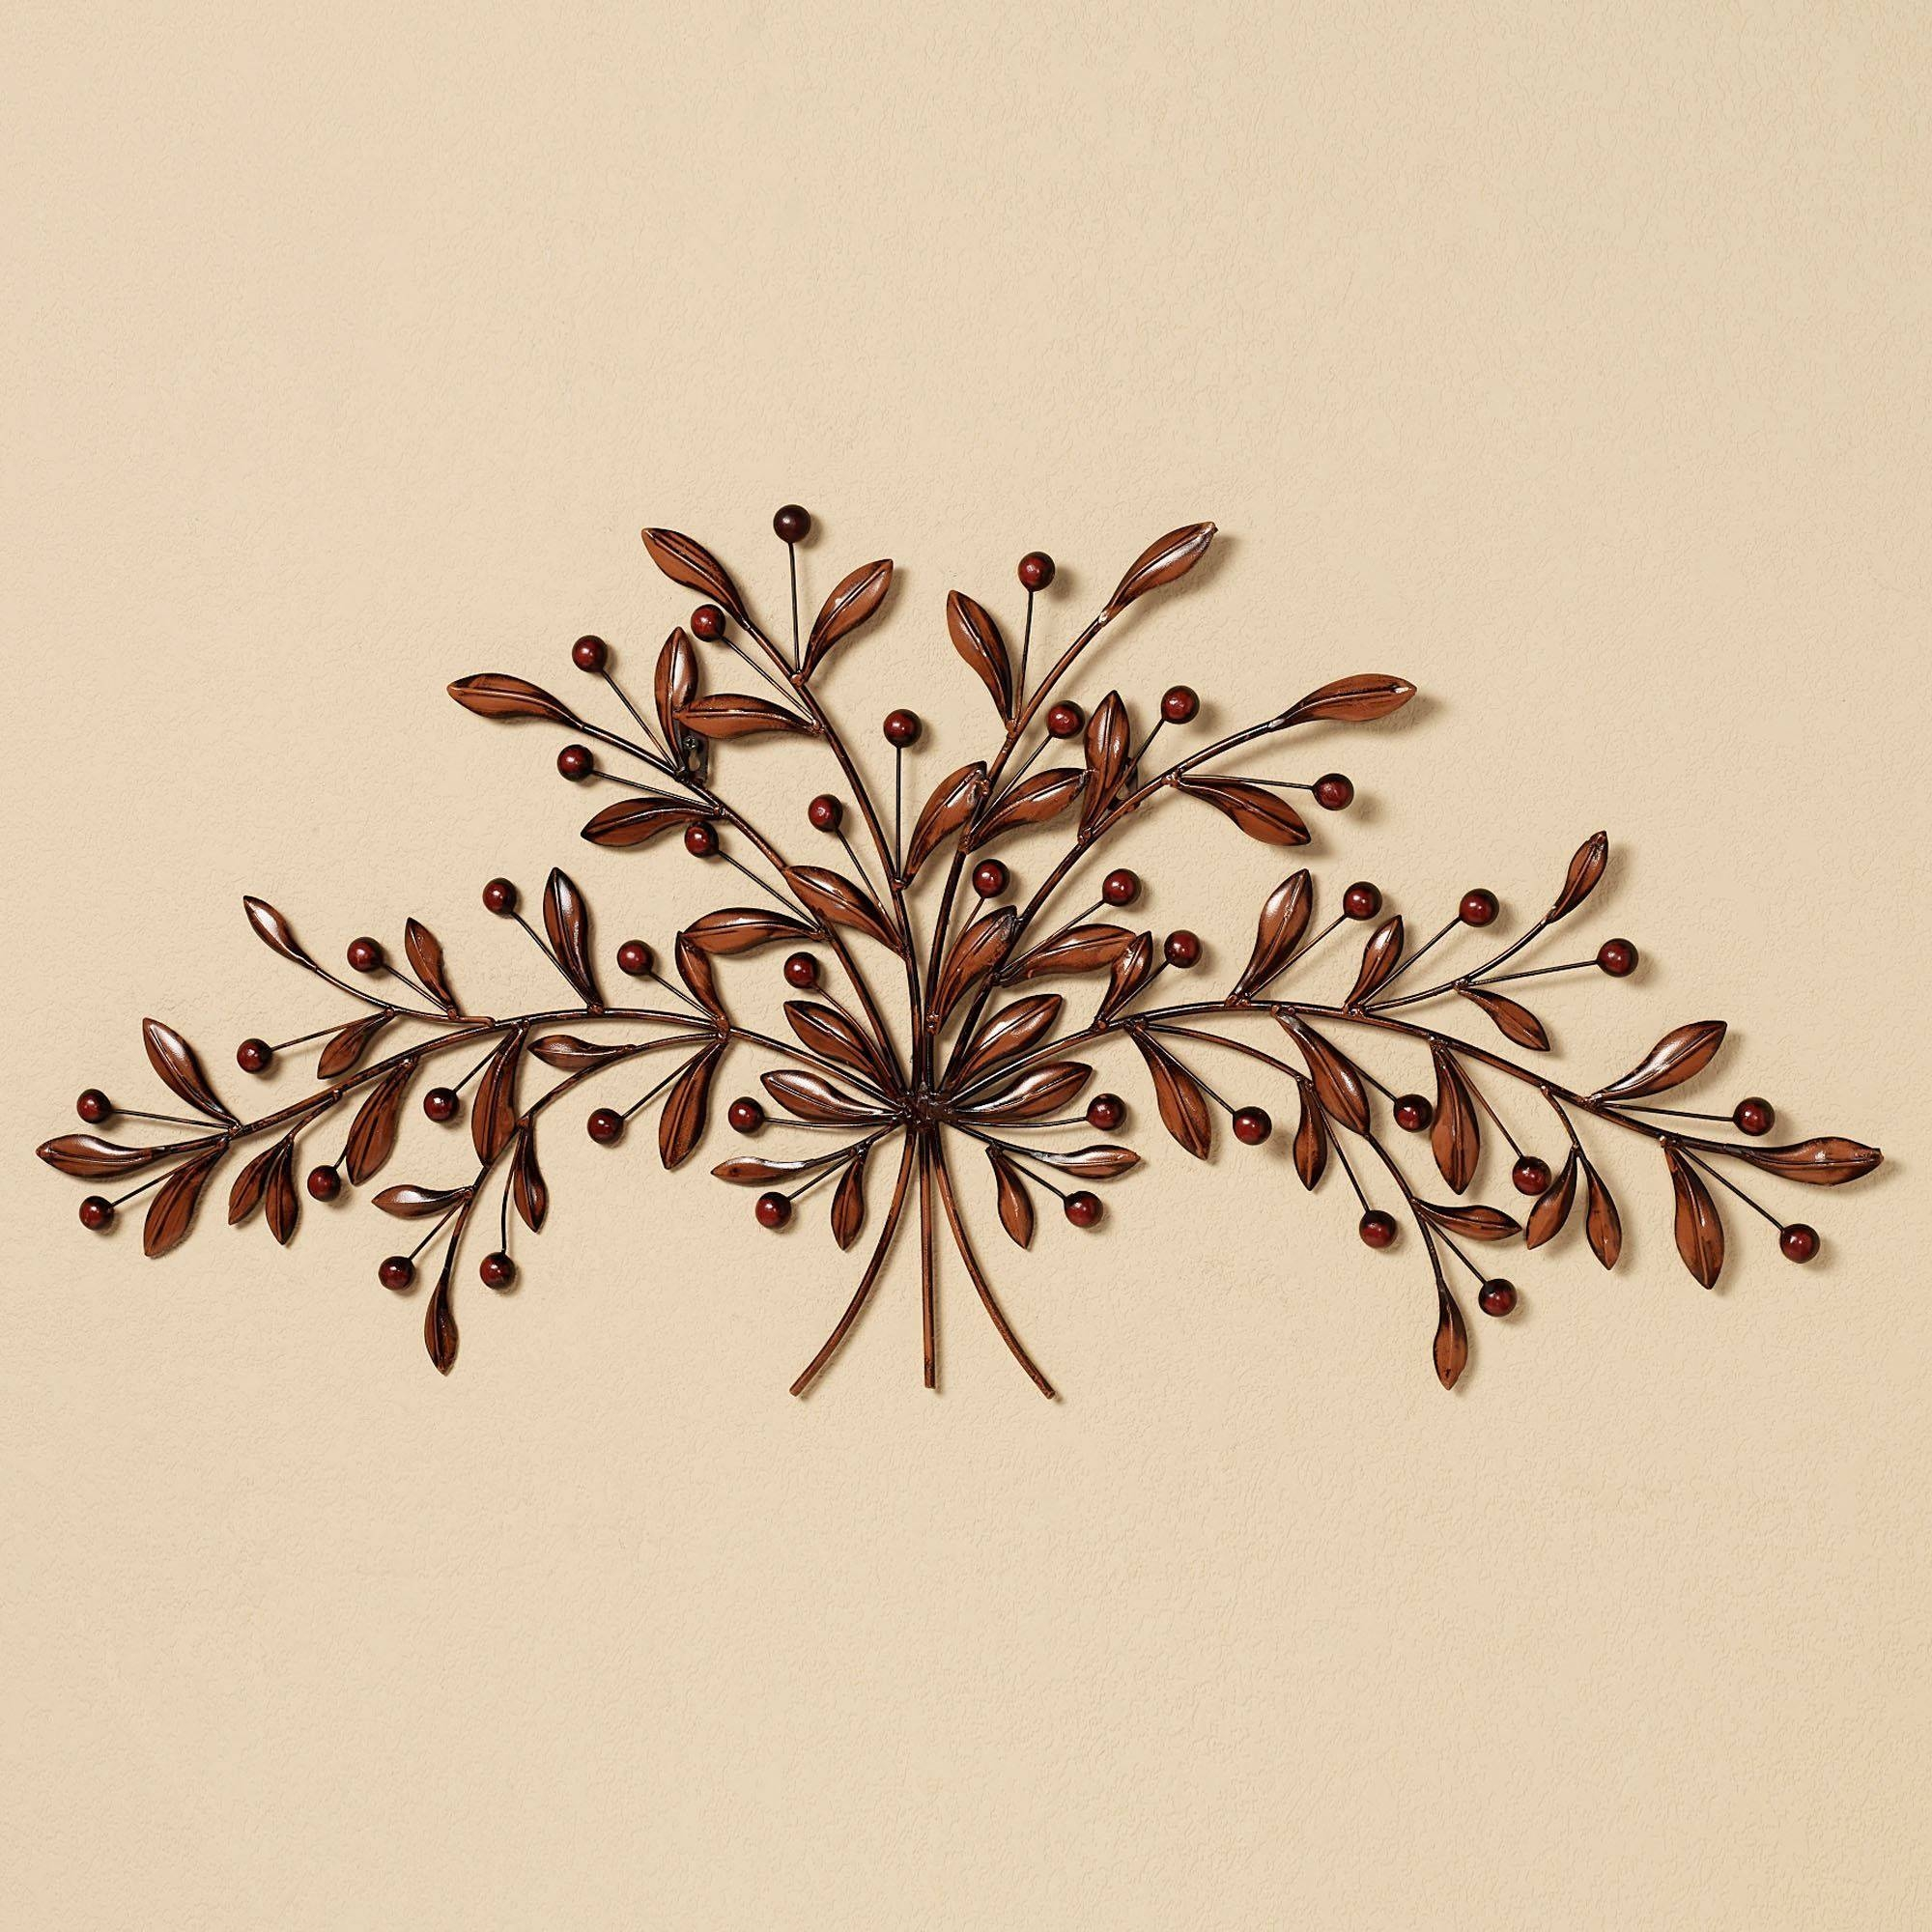 Cantabria Branch Metal Wall Art Spray For Best And Newest Metal Wall Art Trees And Leaves (View 3 of 20)